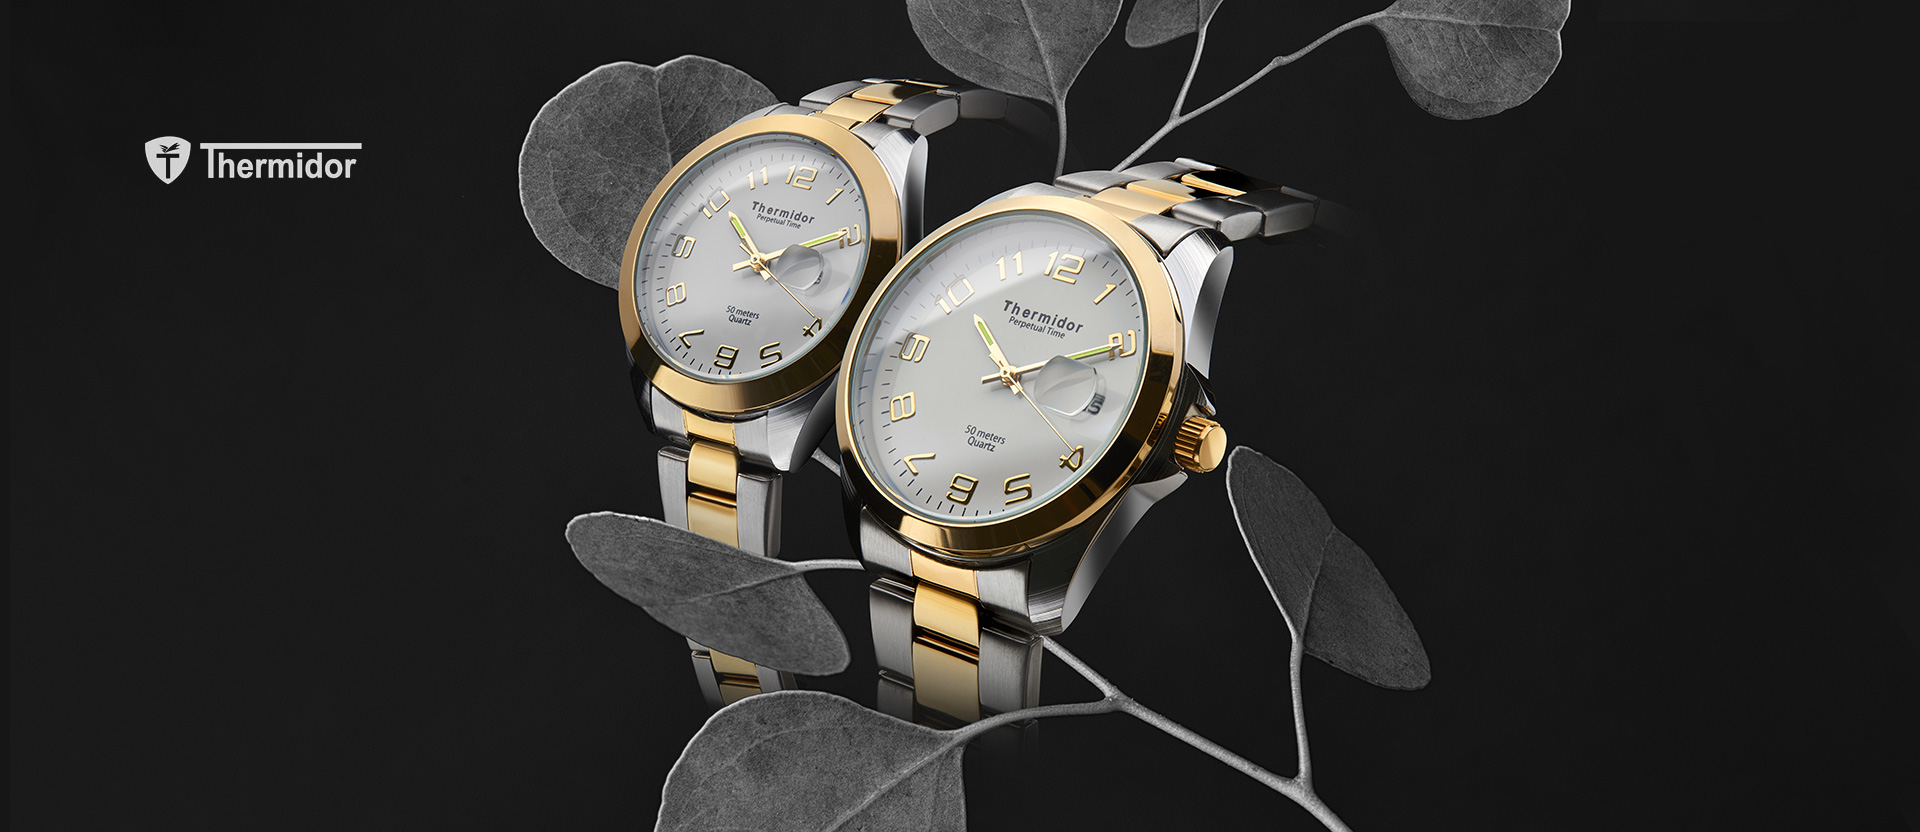 PRODUCTOS LUFTHOUS - LUFTHOUS - RELOJES - RELOJ THERMIDOR NEW PERPETUAL TIME - THERMIDOR